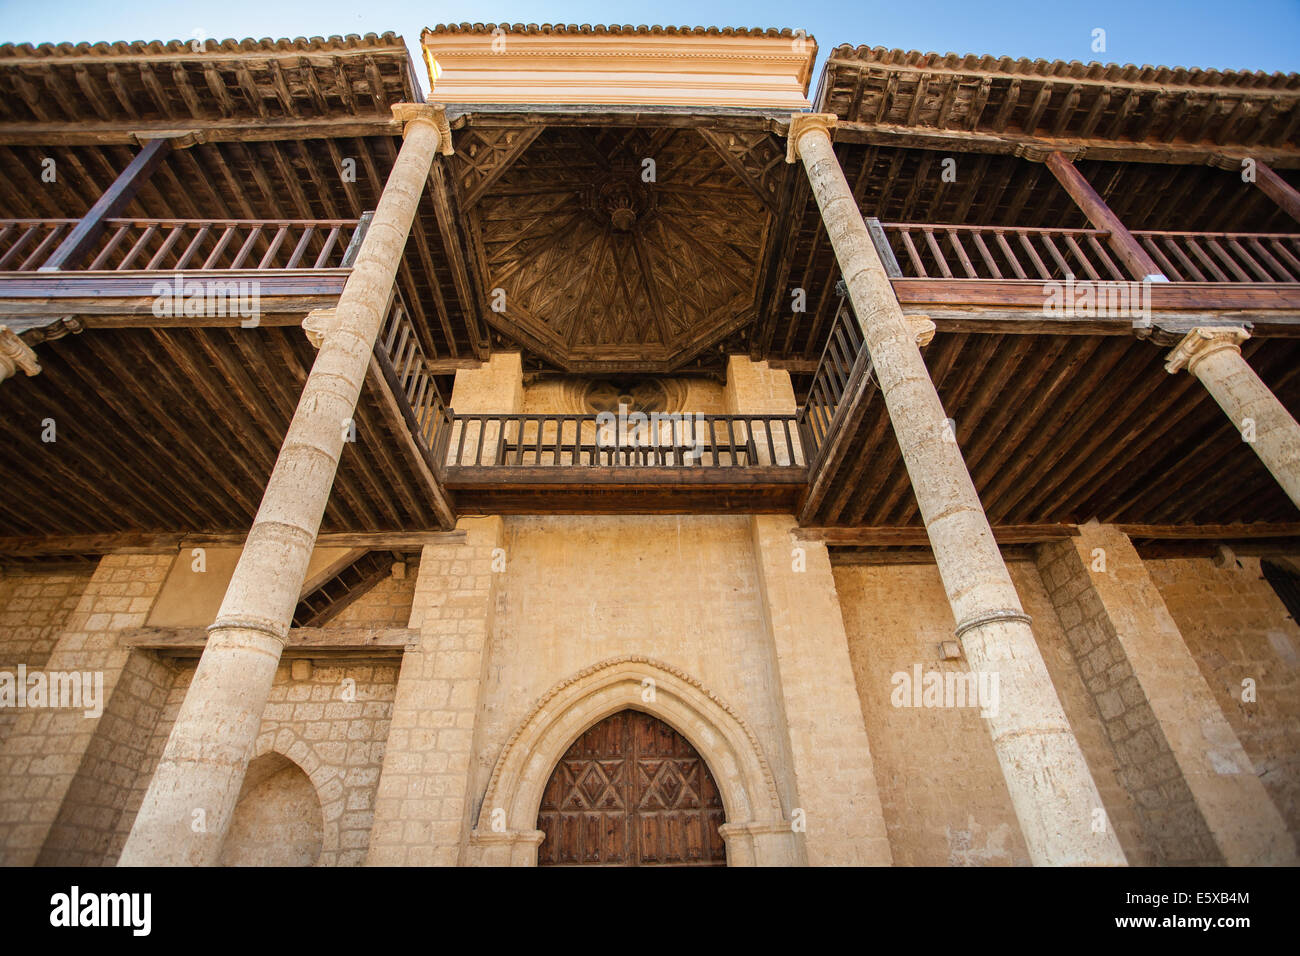 Full view facade of Santa Maria Church in the village of Becerril de Campos province of Palencia, Spain. It is also - Stock Image